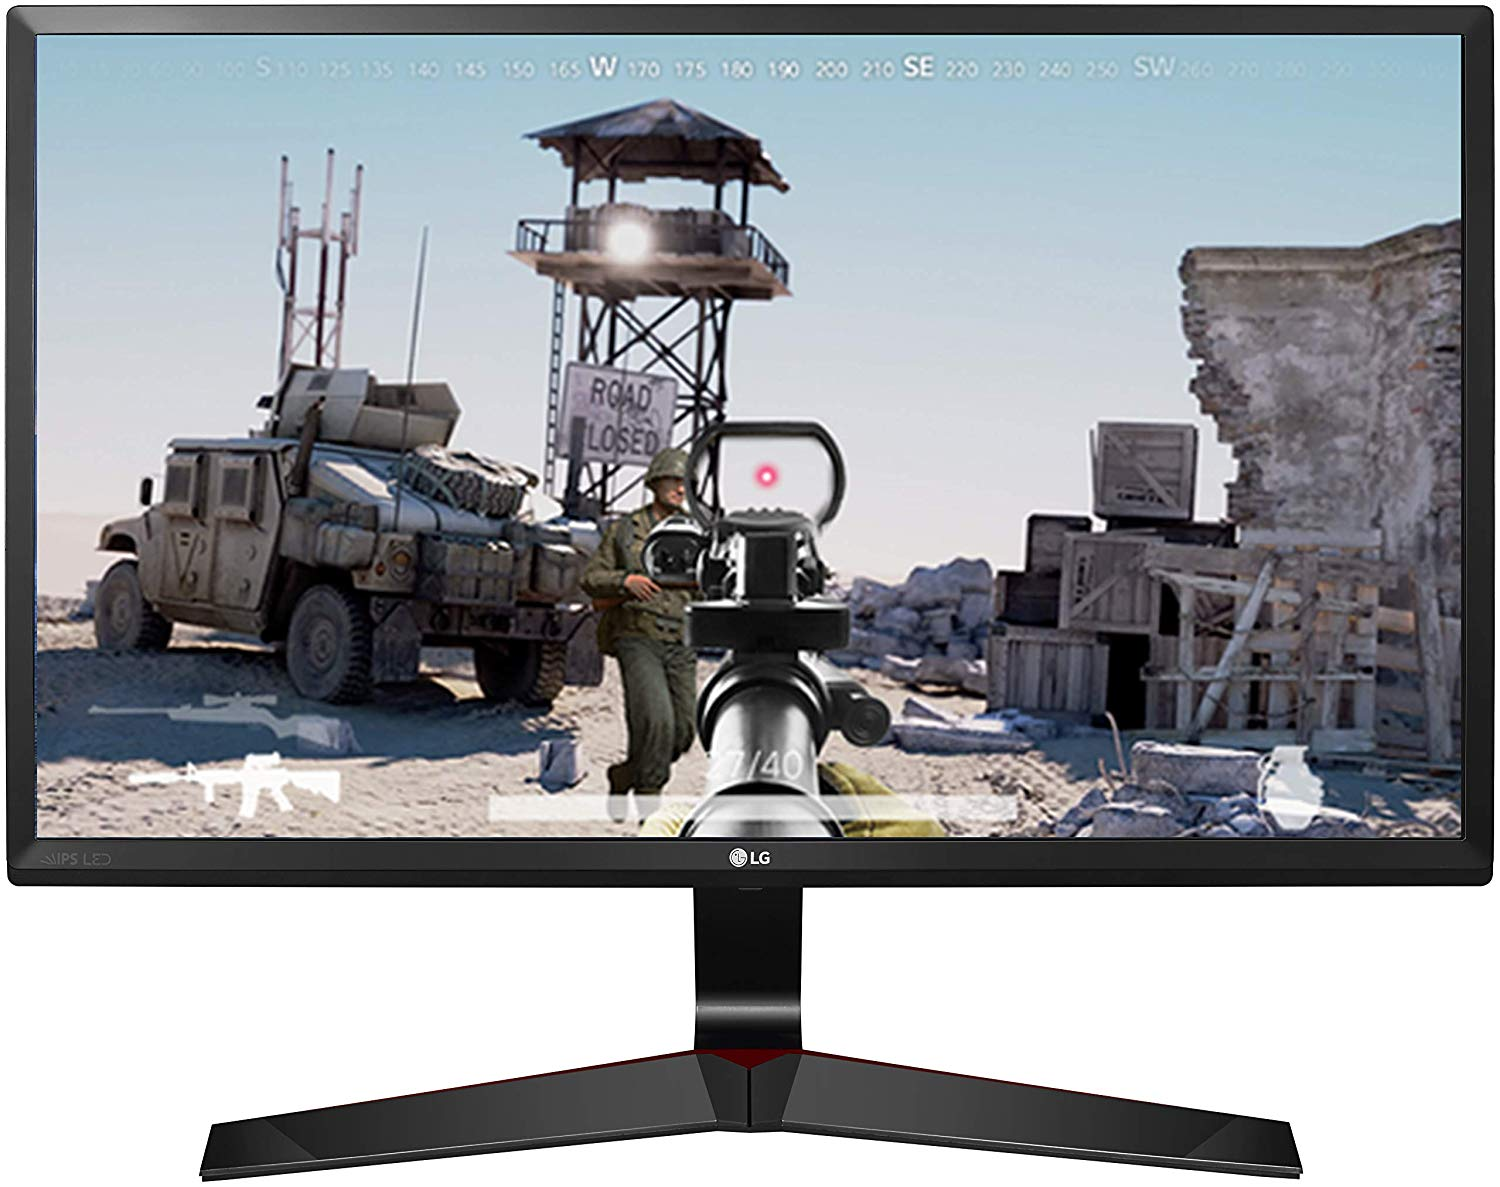 LG 24 inch Monitor For Gaming